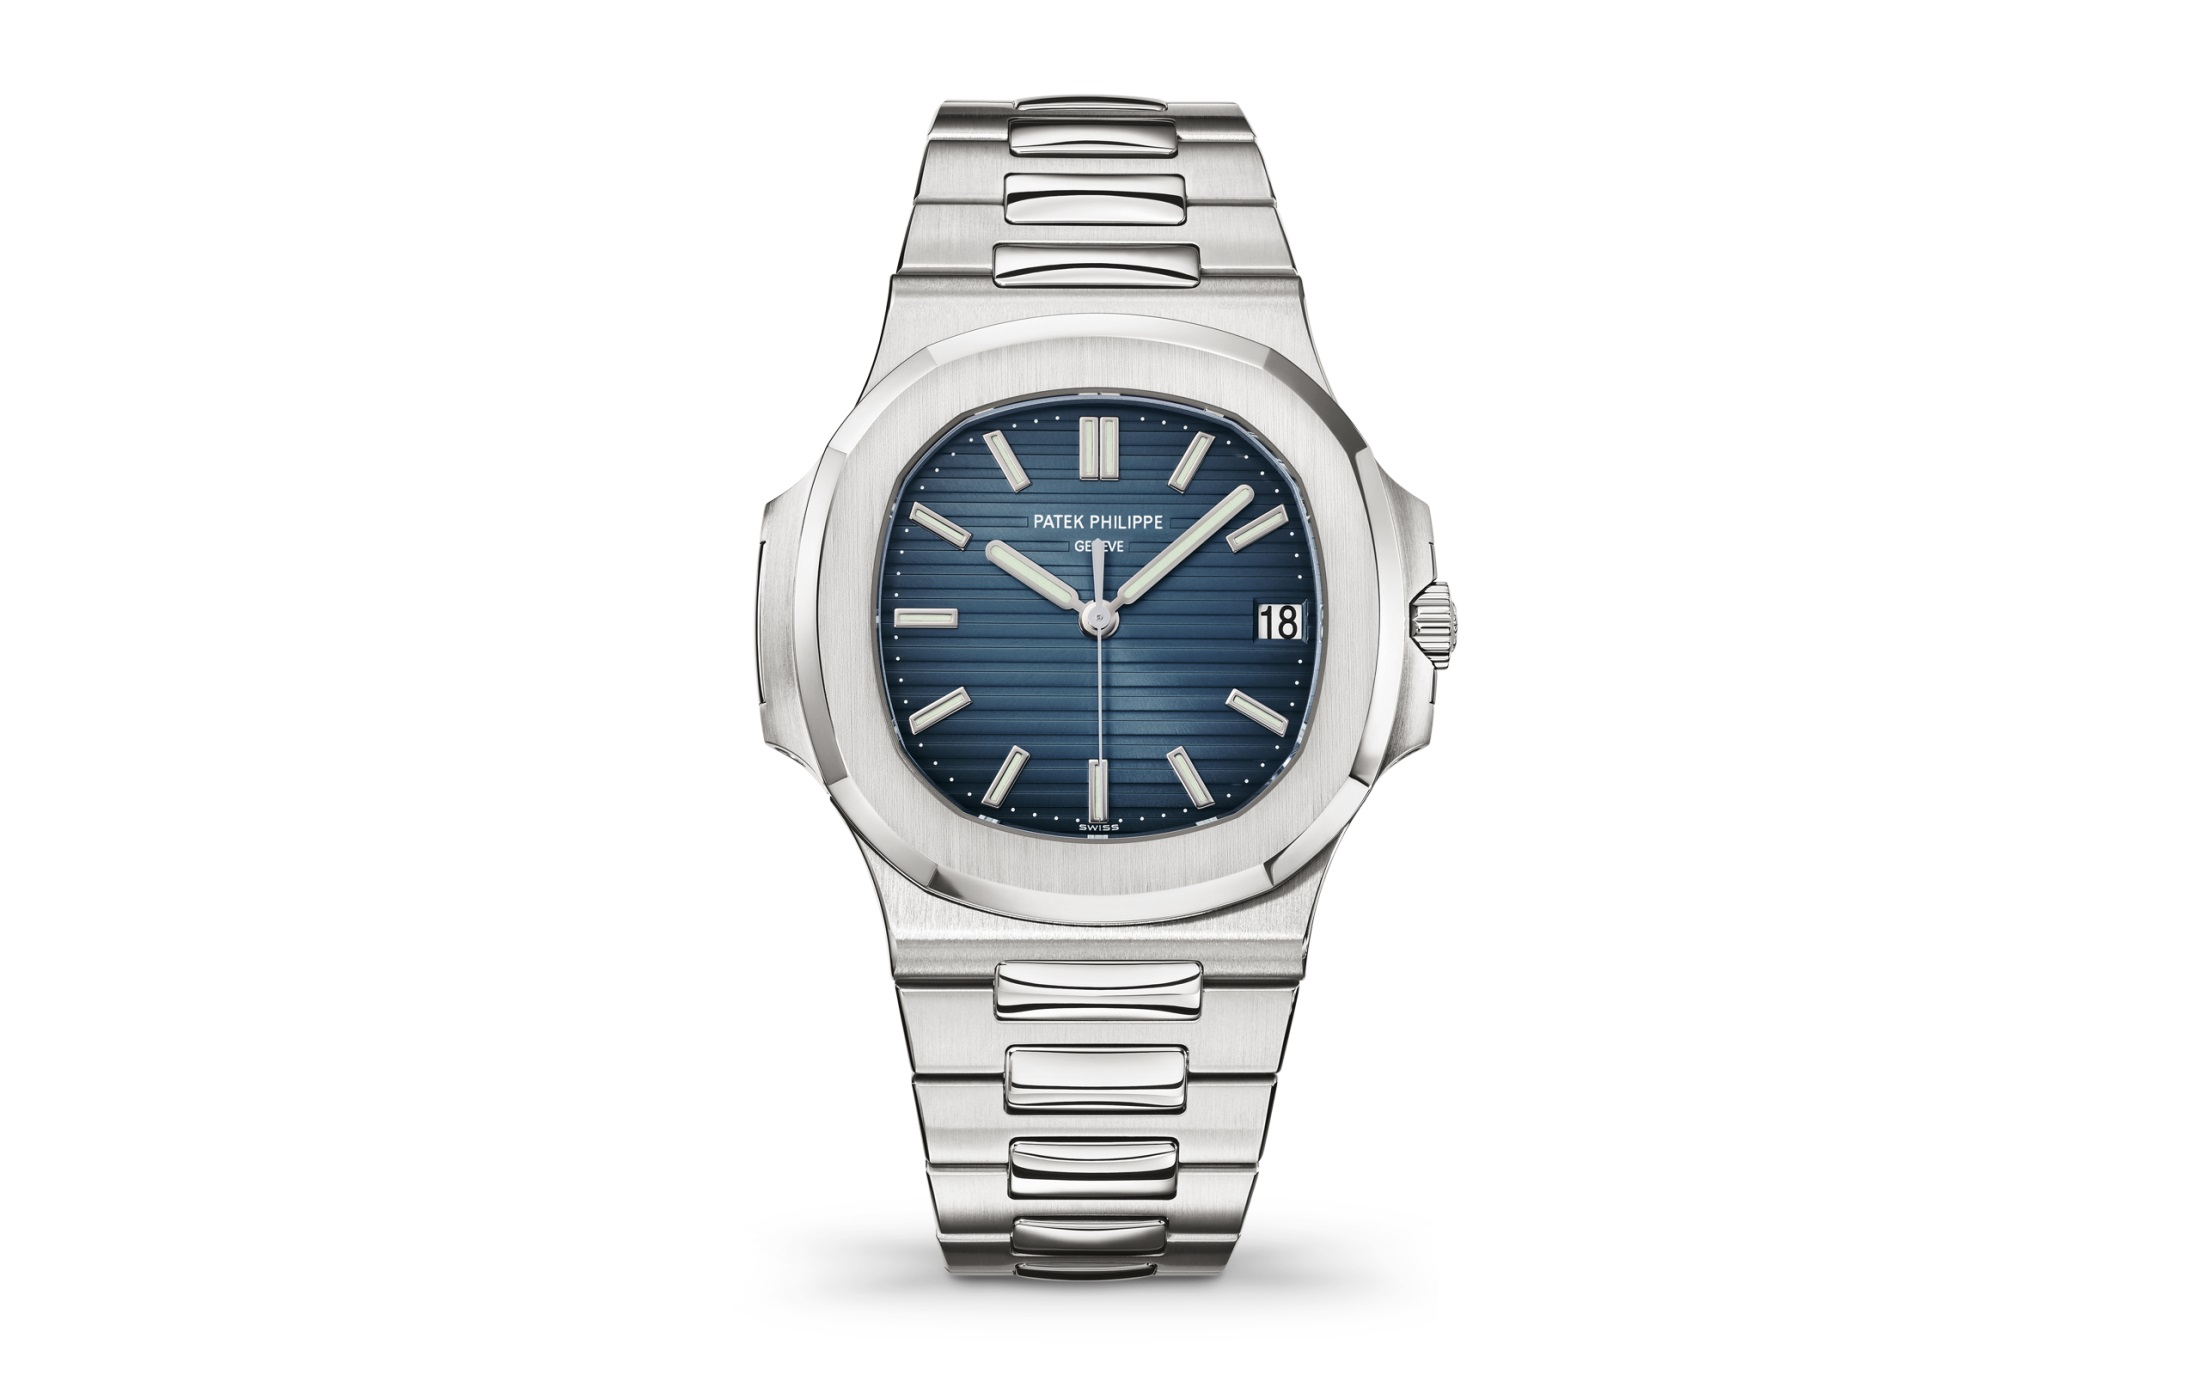 The accuracy has been perfectly guaranteed by the self-winding mechanical movement calibre 324 SC.